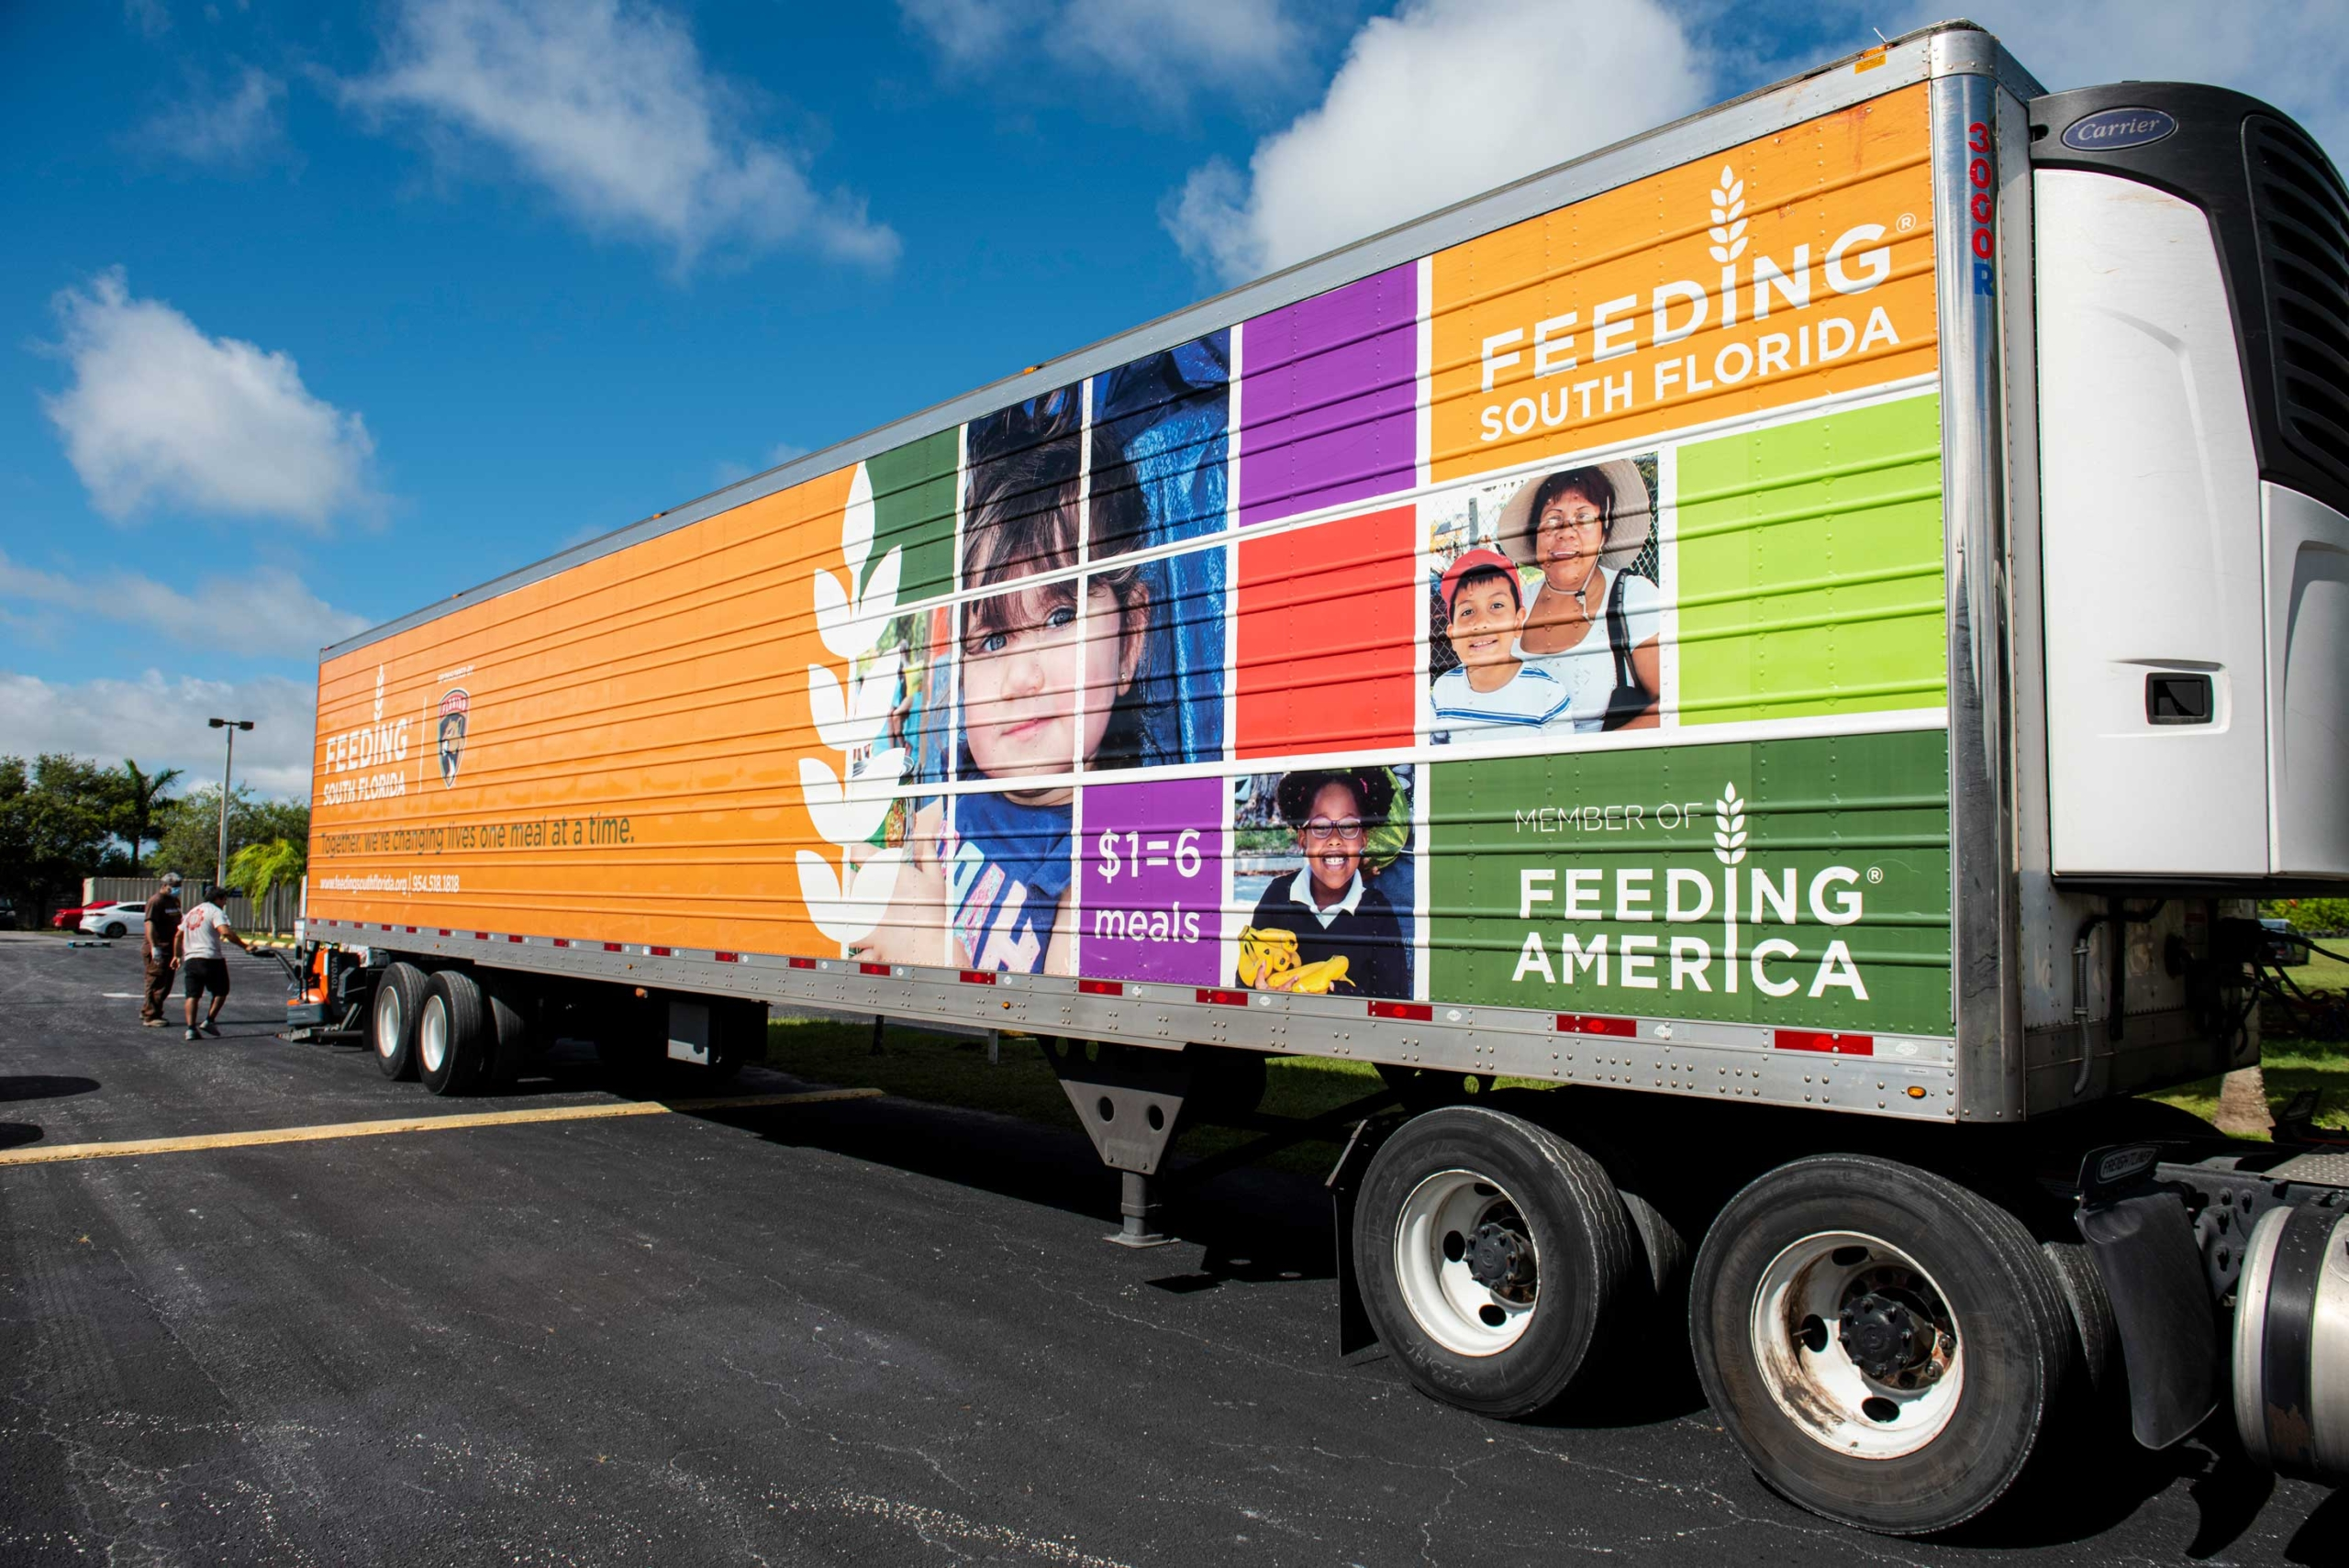 Raytheon Technologies Supports Feeding South Florida® with $159,000 Donation  to Address Increased Need for Food Assistance